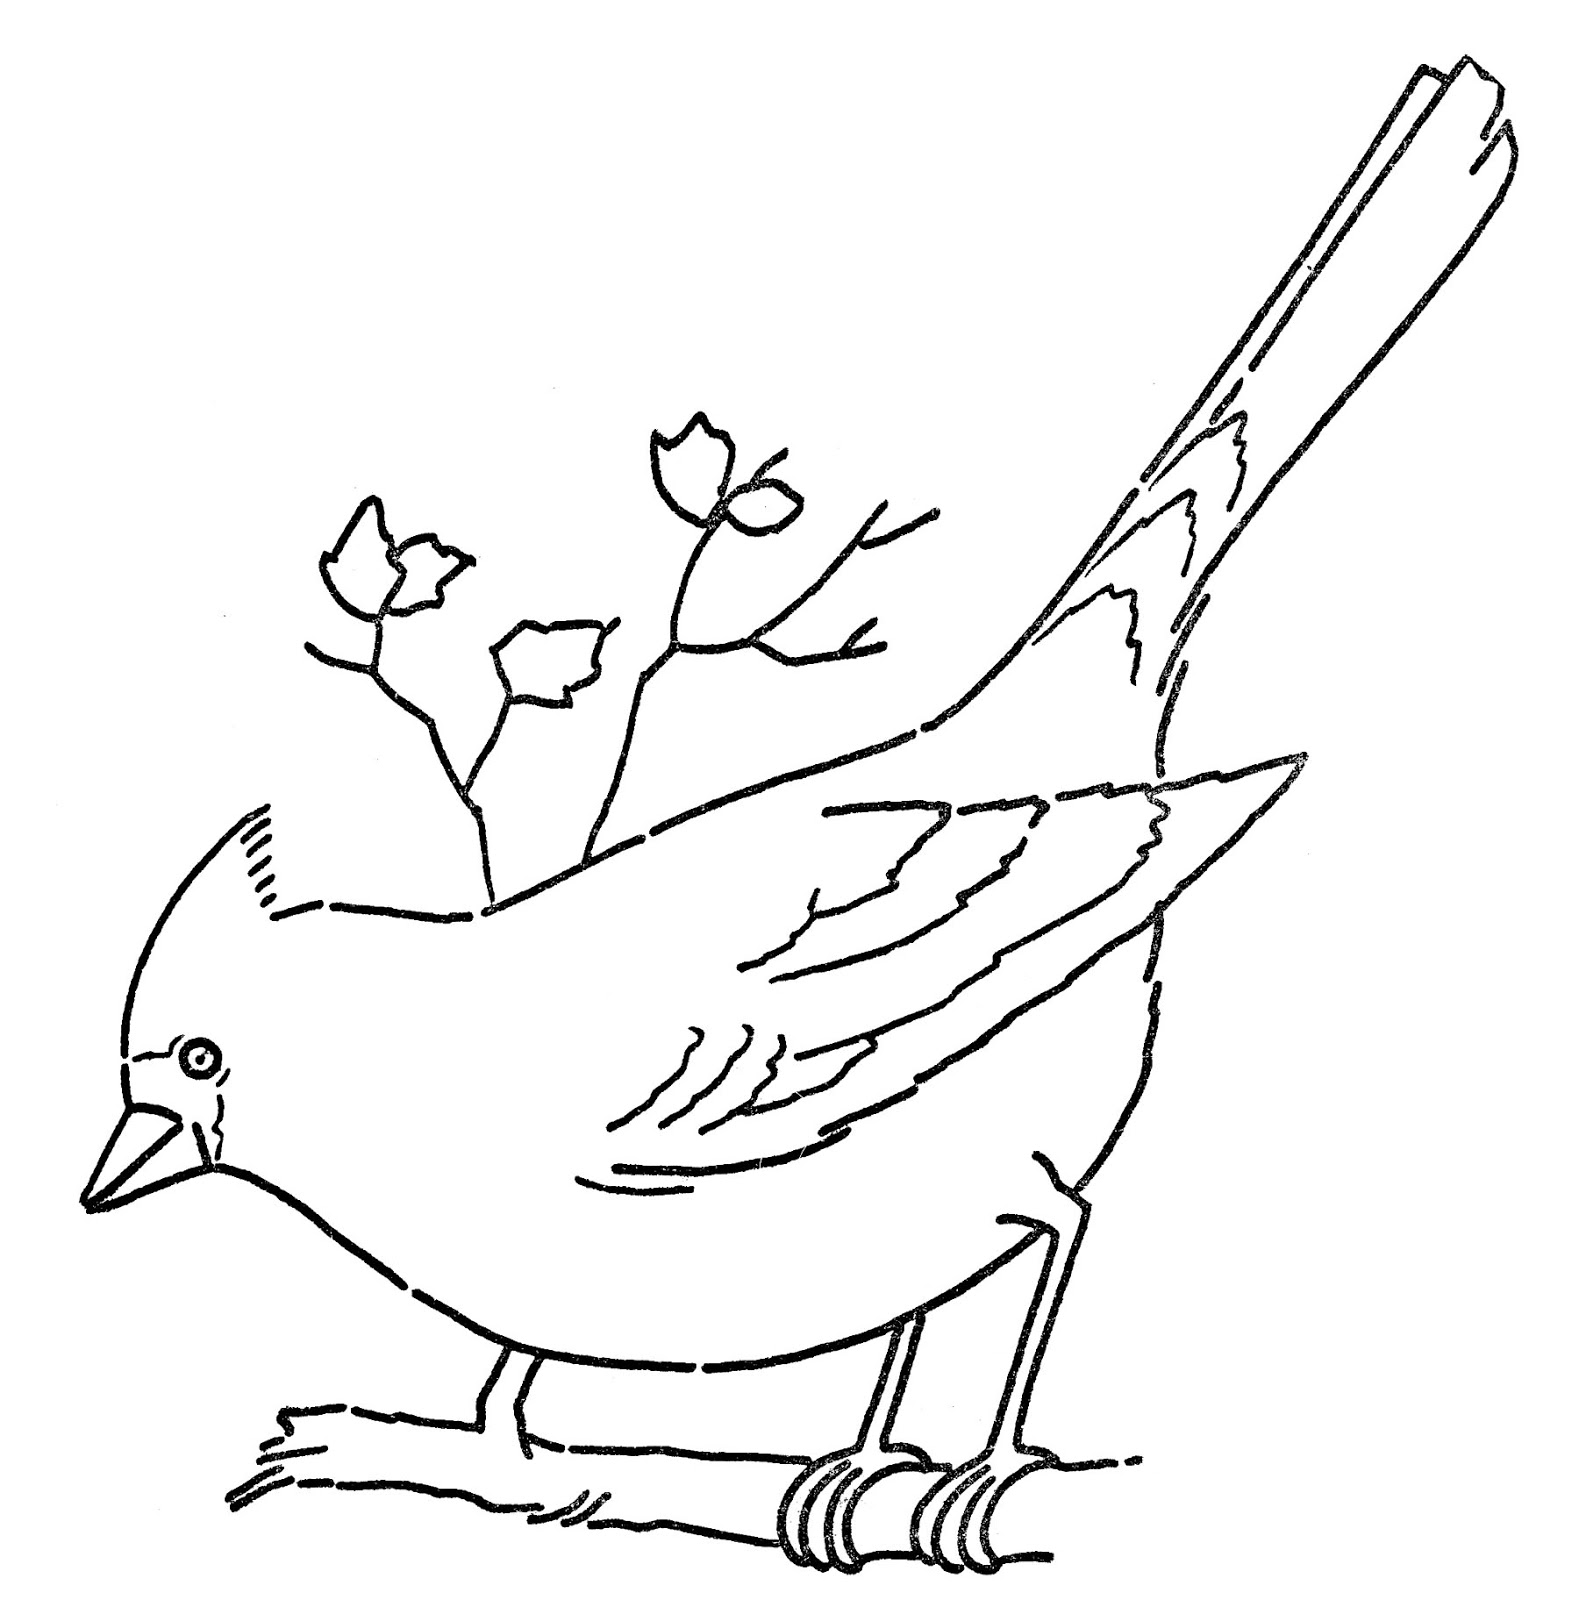 Simple Bird Line Art : Line art coloring page cardinal on branch the